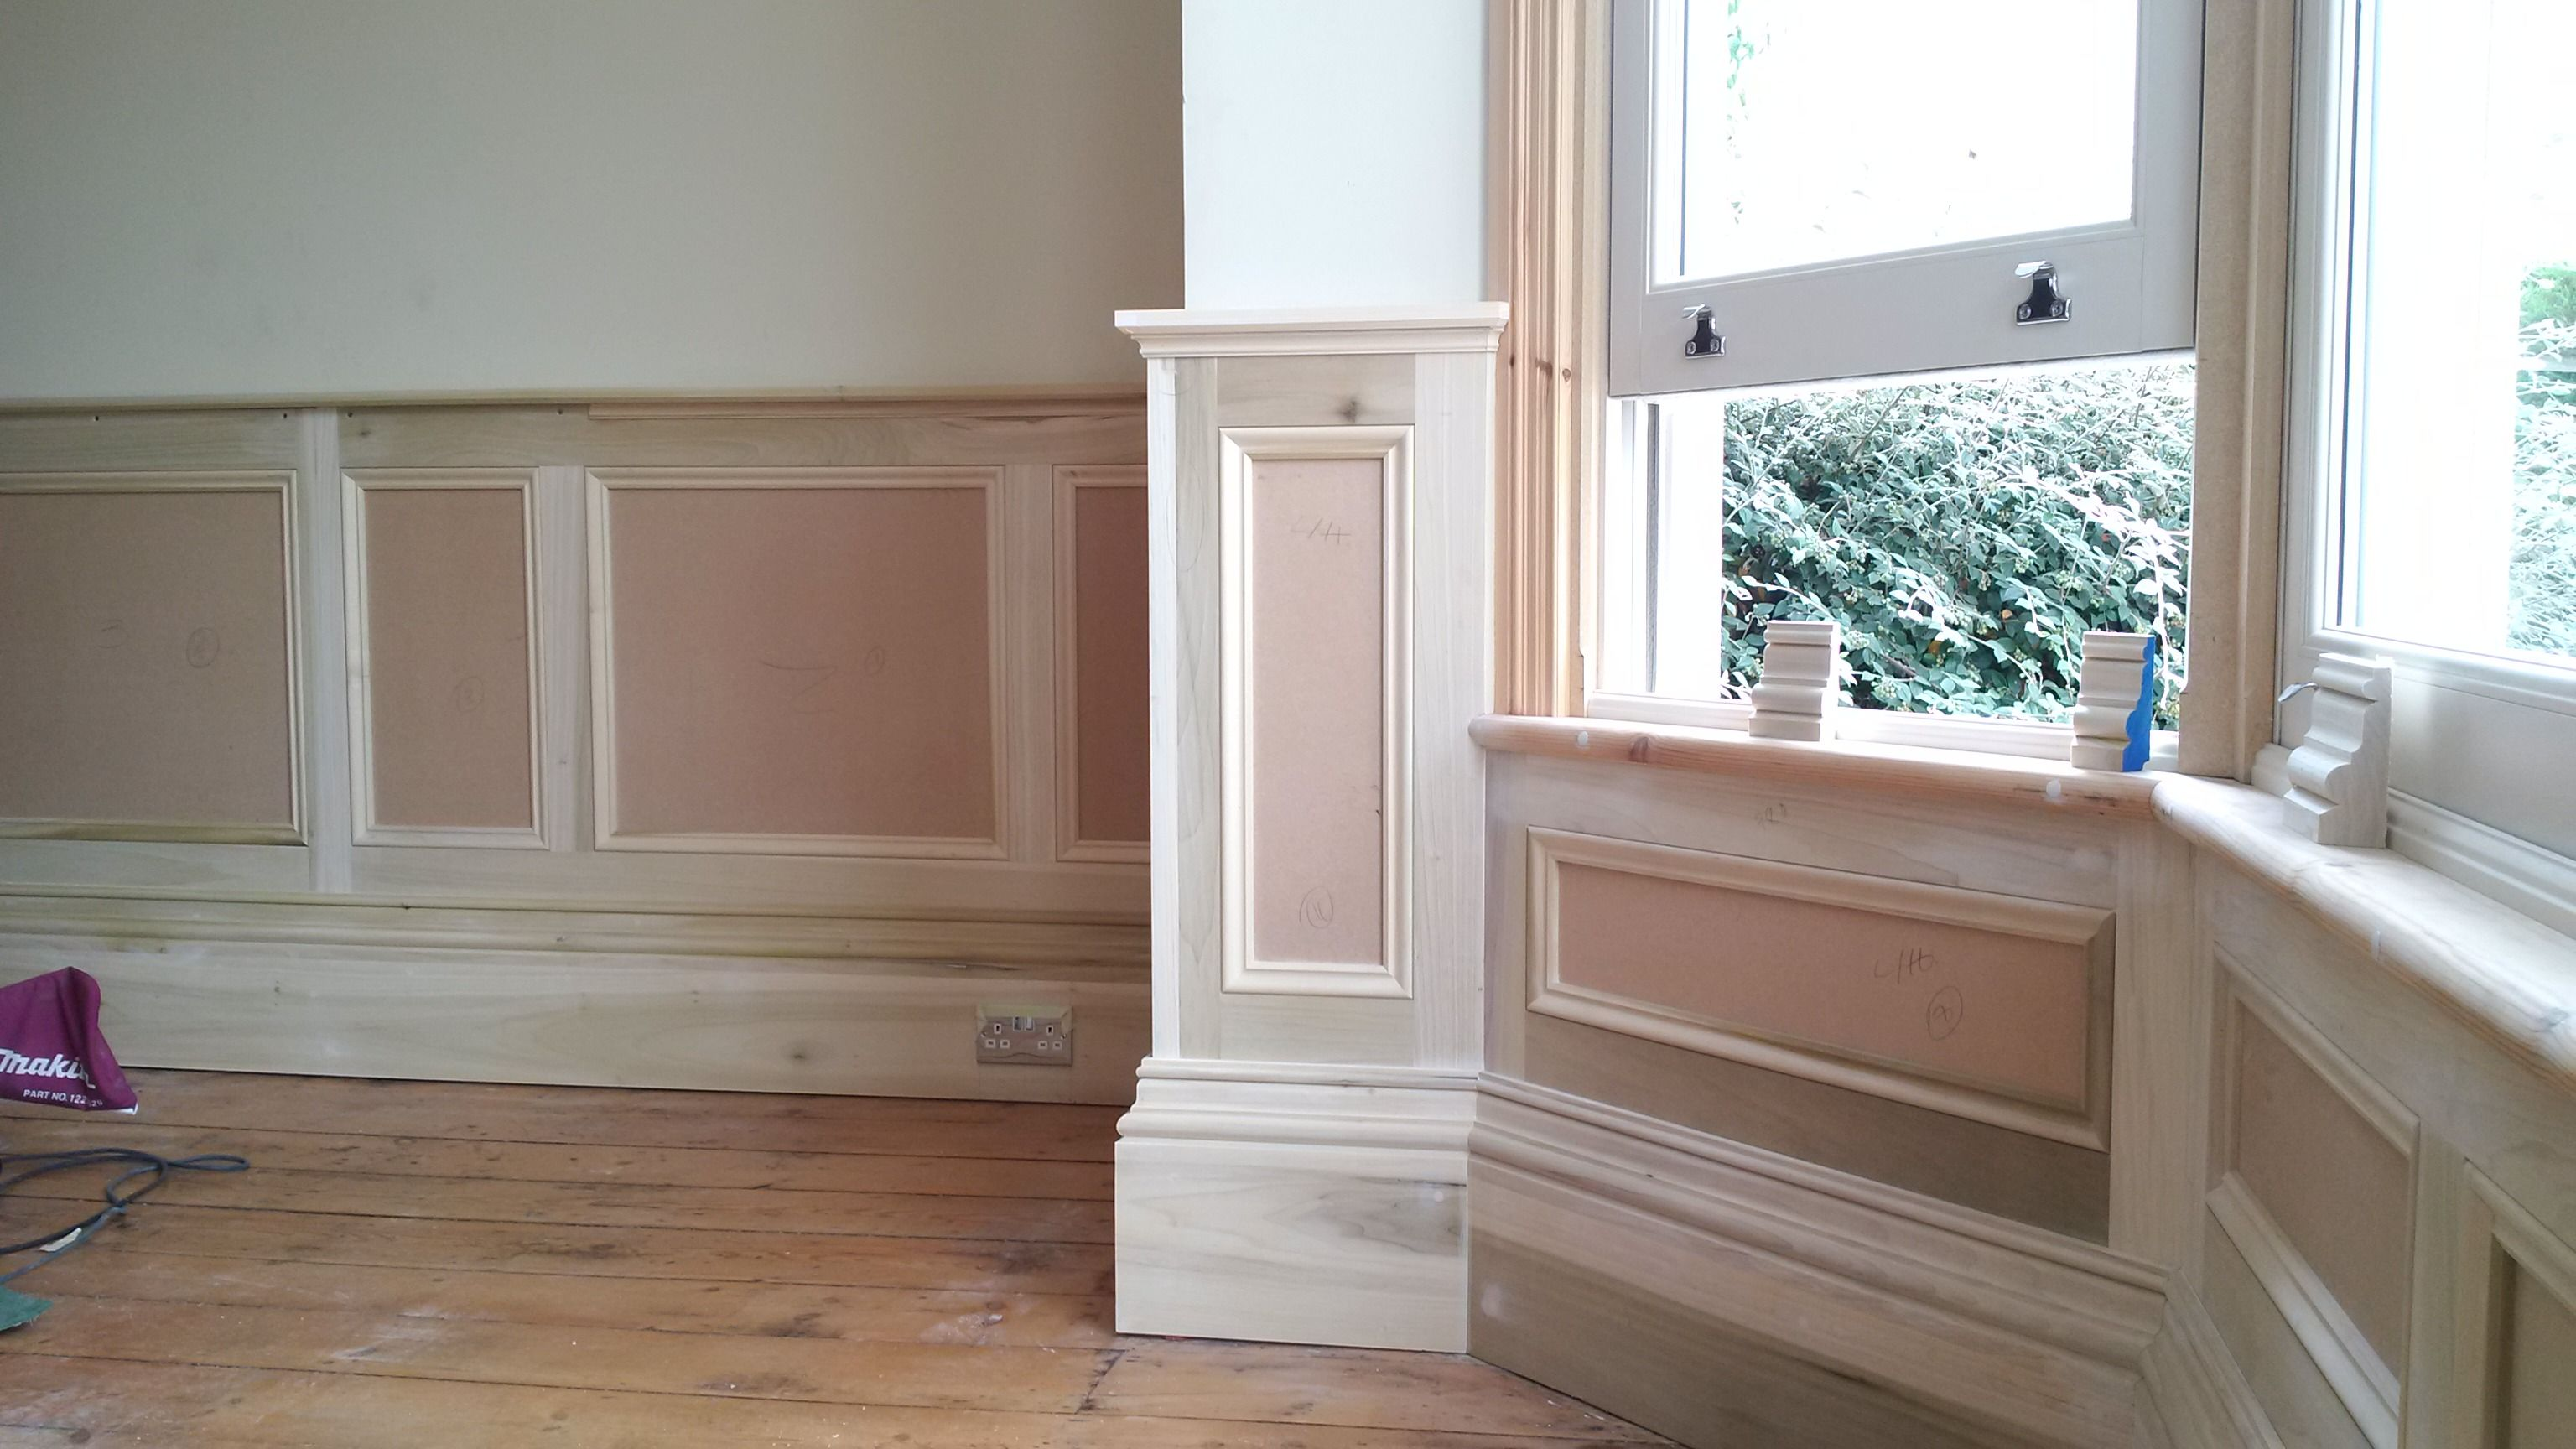 New Bay Window Panels And Wainscoting To Match Around The Rest Of The Rooms Wainscoting Bay Window Diy Wainscoting